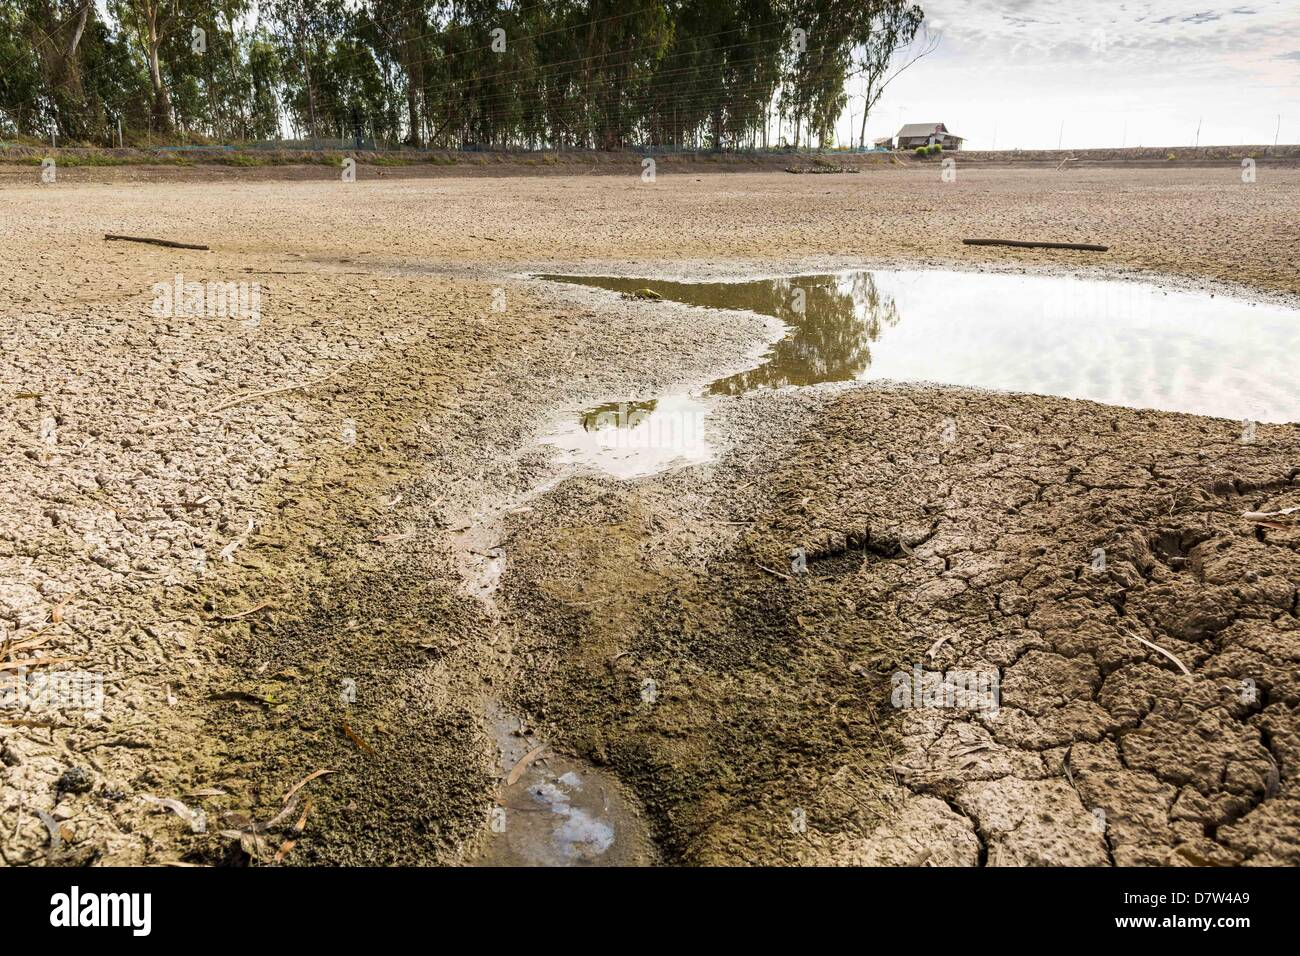 Bangtathen, Saphun Buri, Thailand. May 14, 2013. An empty shrimp pond on a shrimp farm in Saphunburi province of Stock Photo